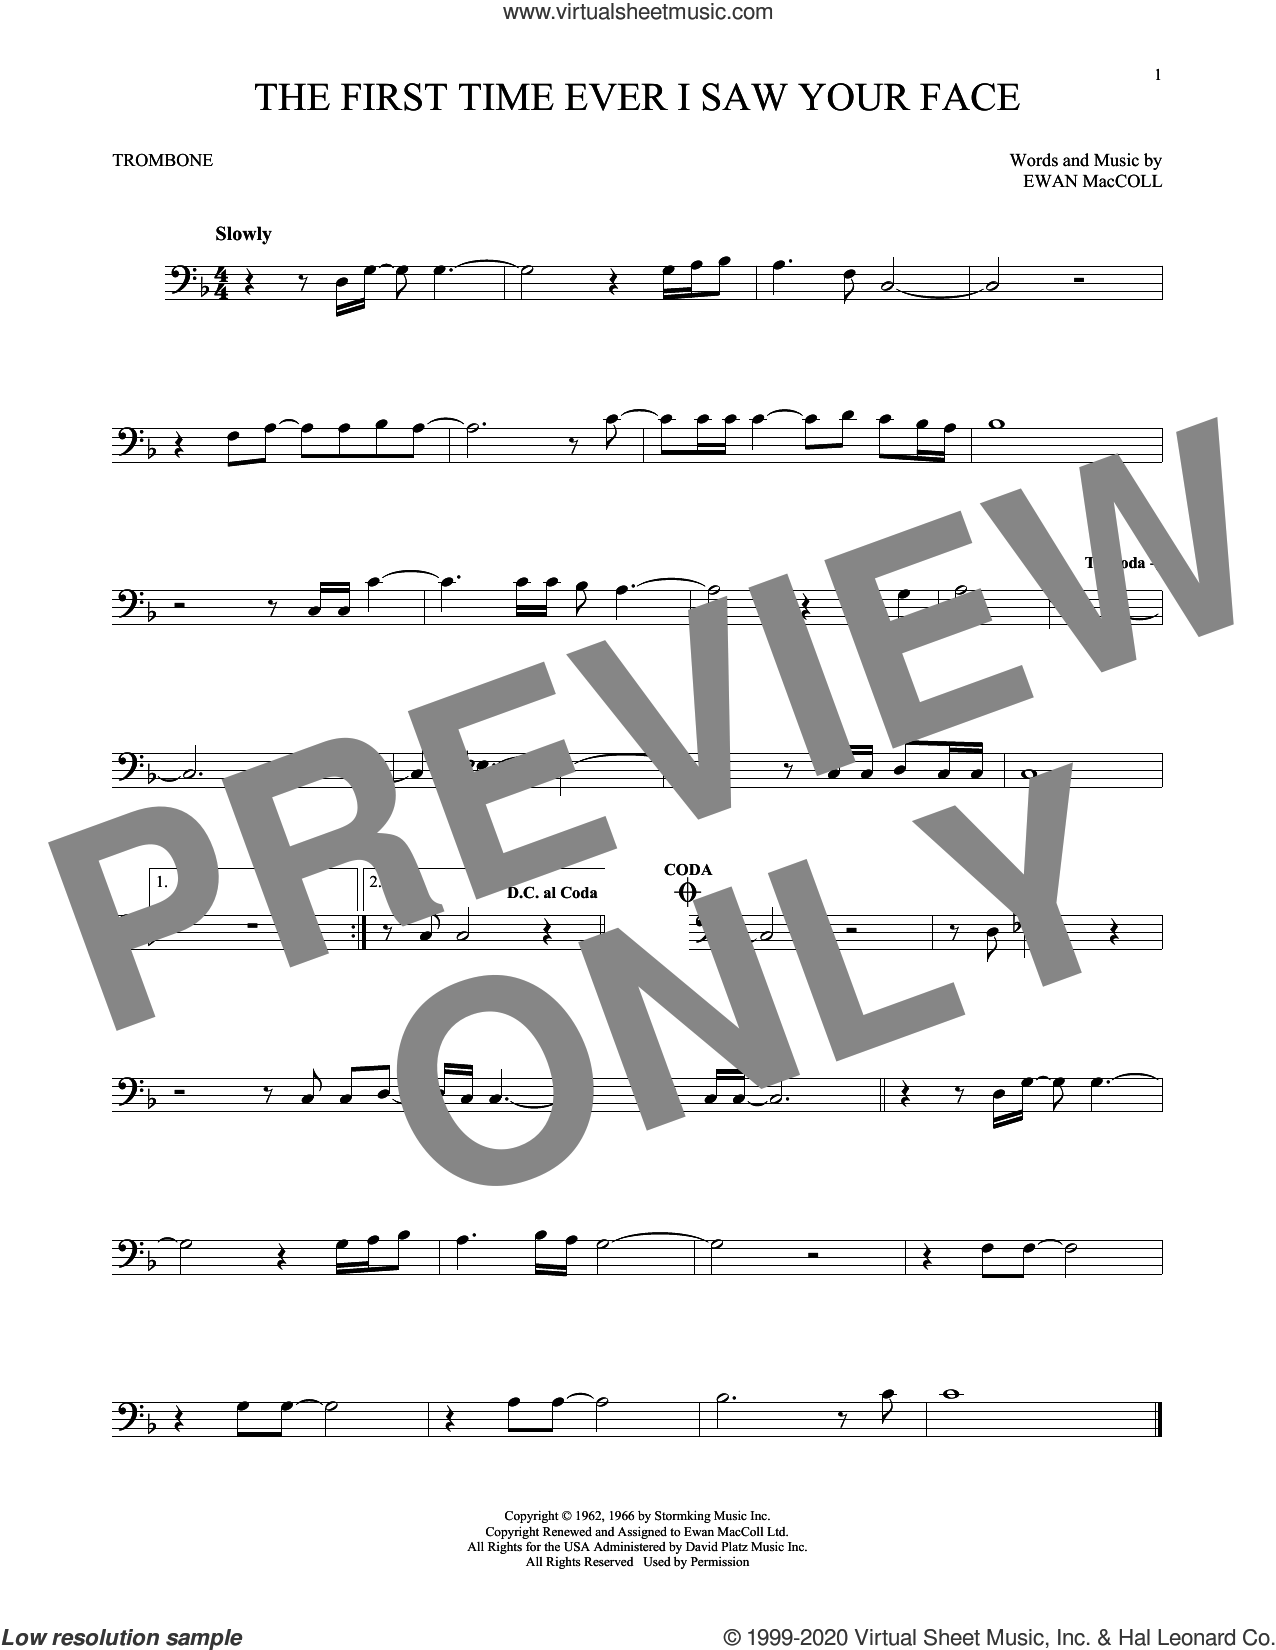 The First Time Ever I Saw Your Face sheet music for trombone solo by Roberta Flack and Ewan MacColl, intermediate skill level